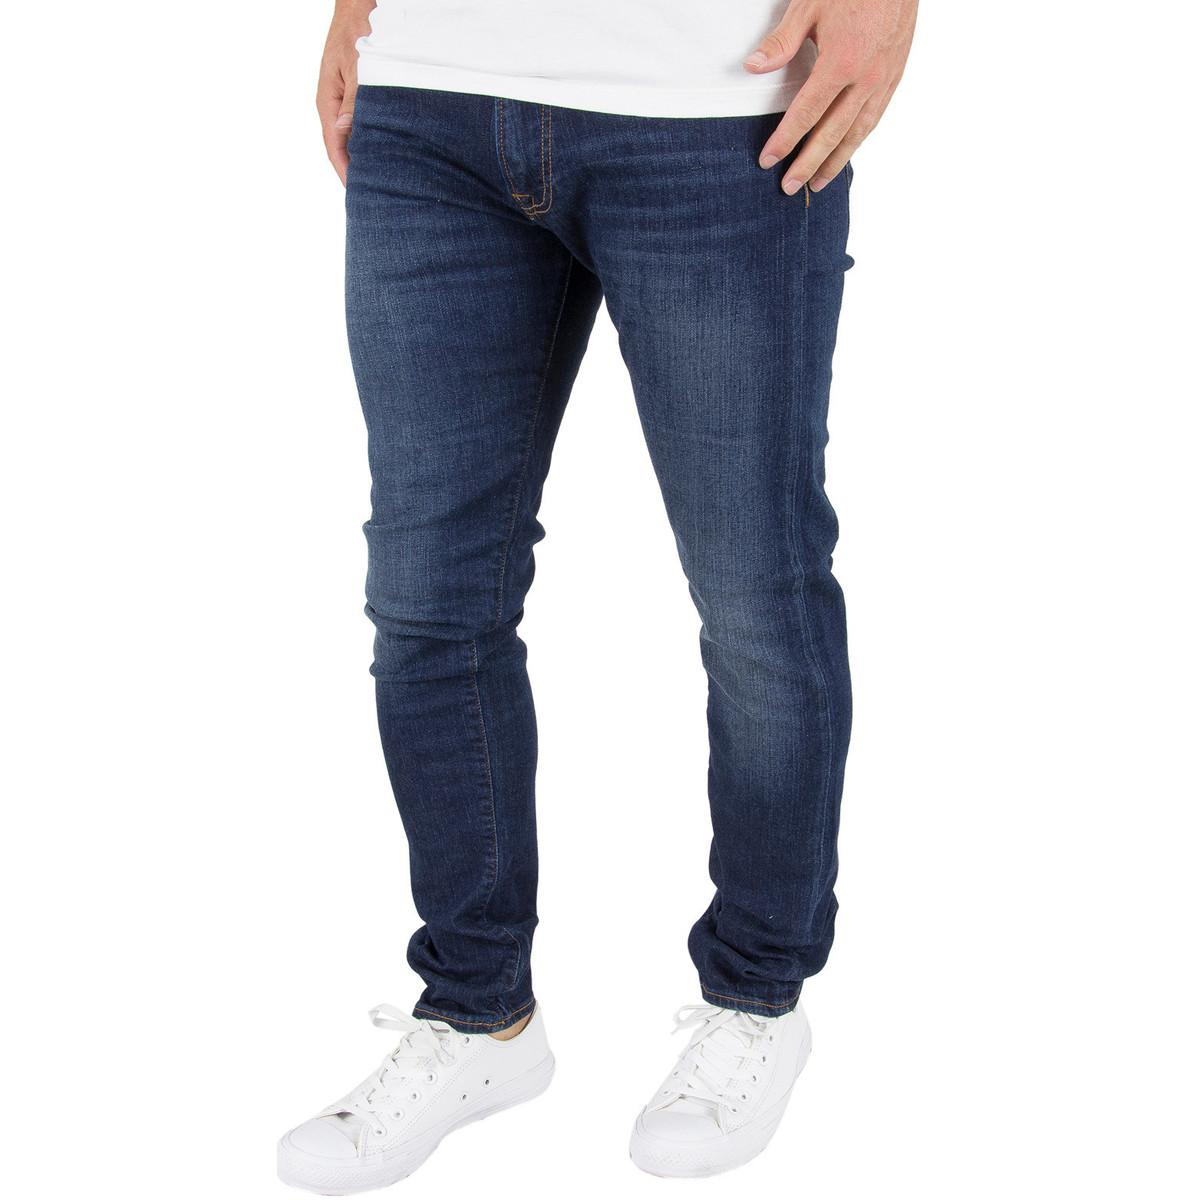 edwin mens ed85 slim tapered jeans blue mens jeans in